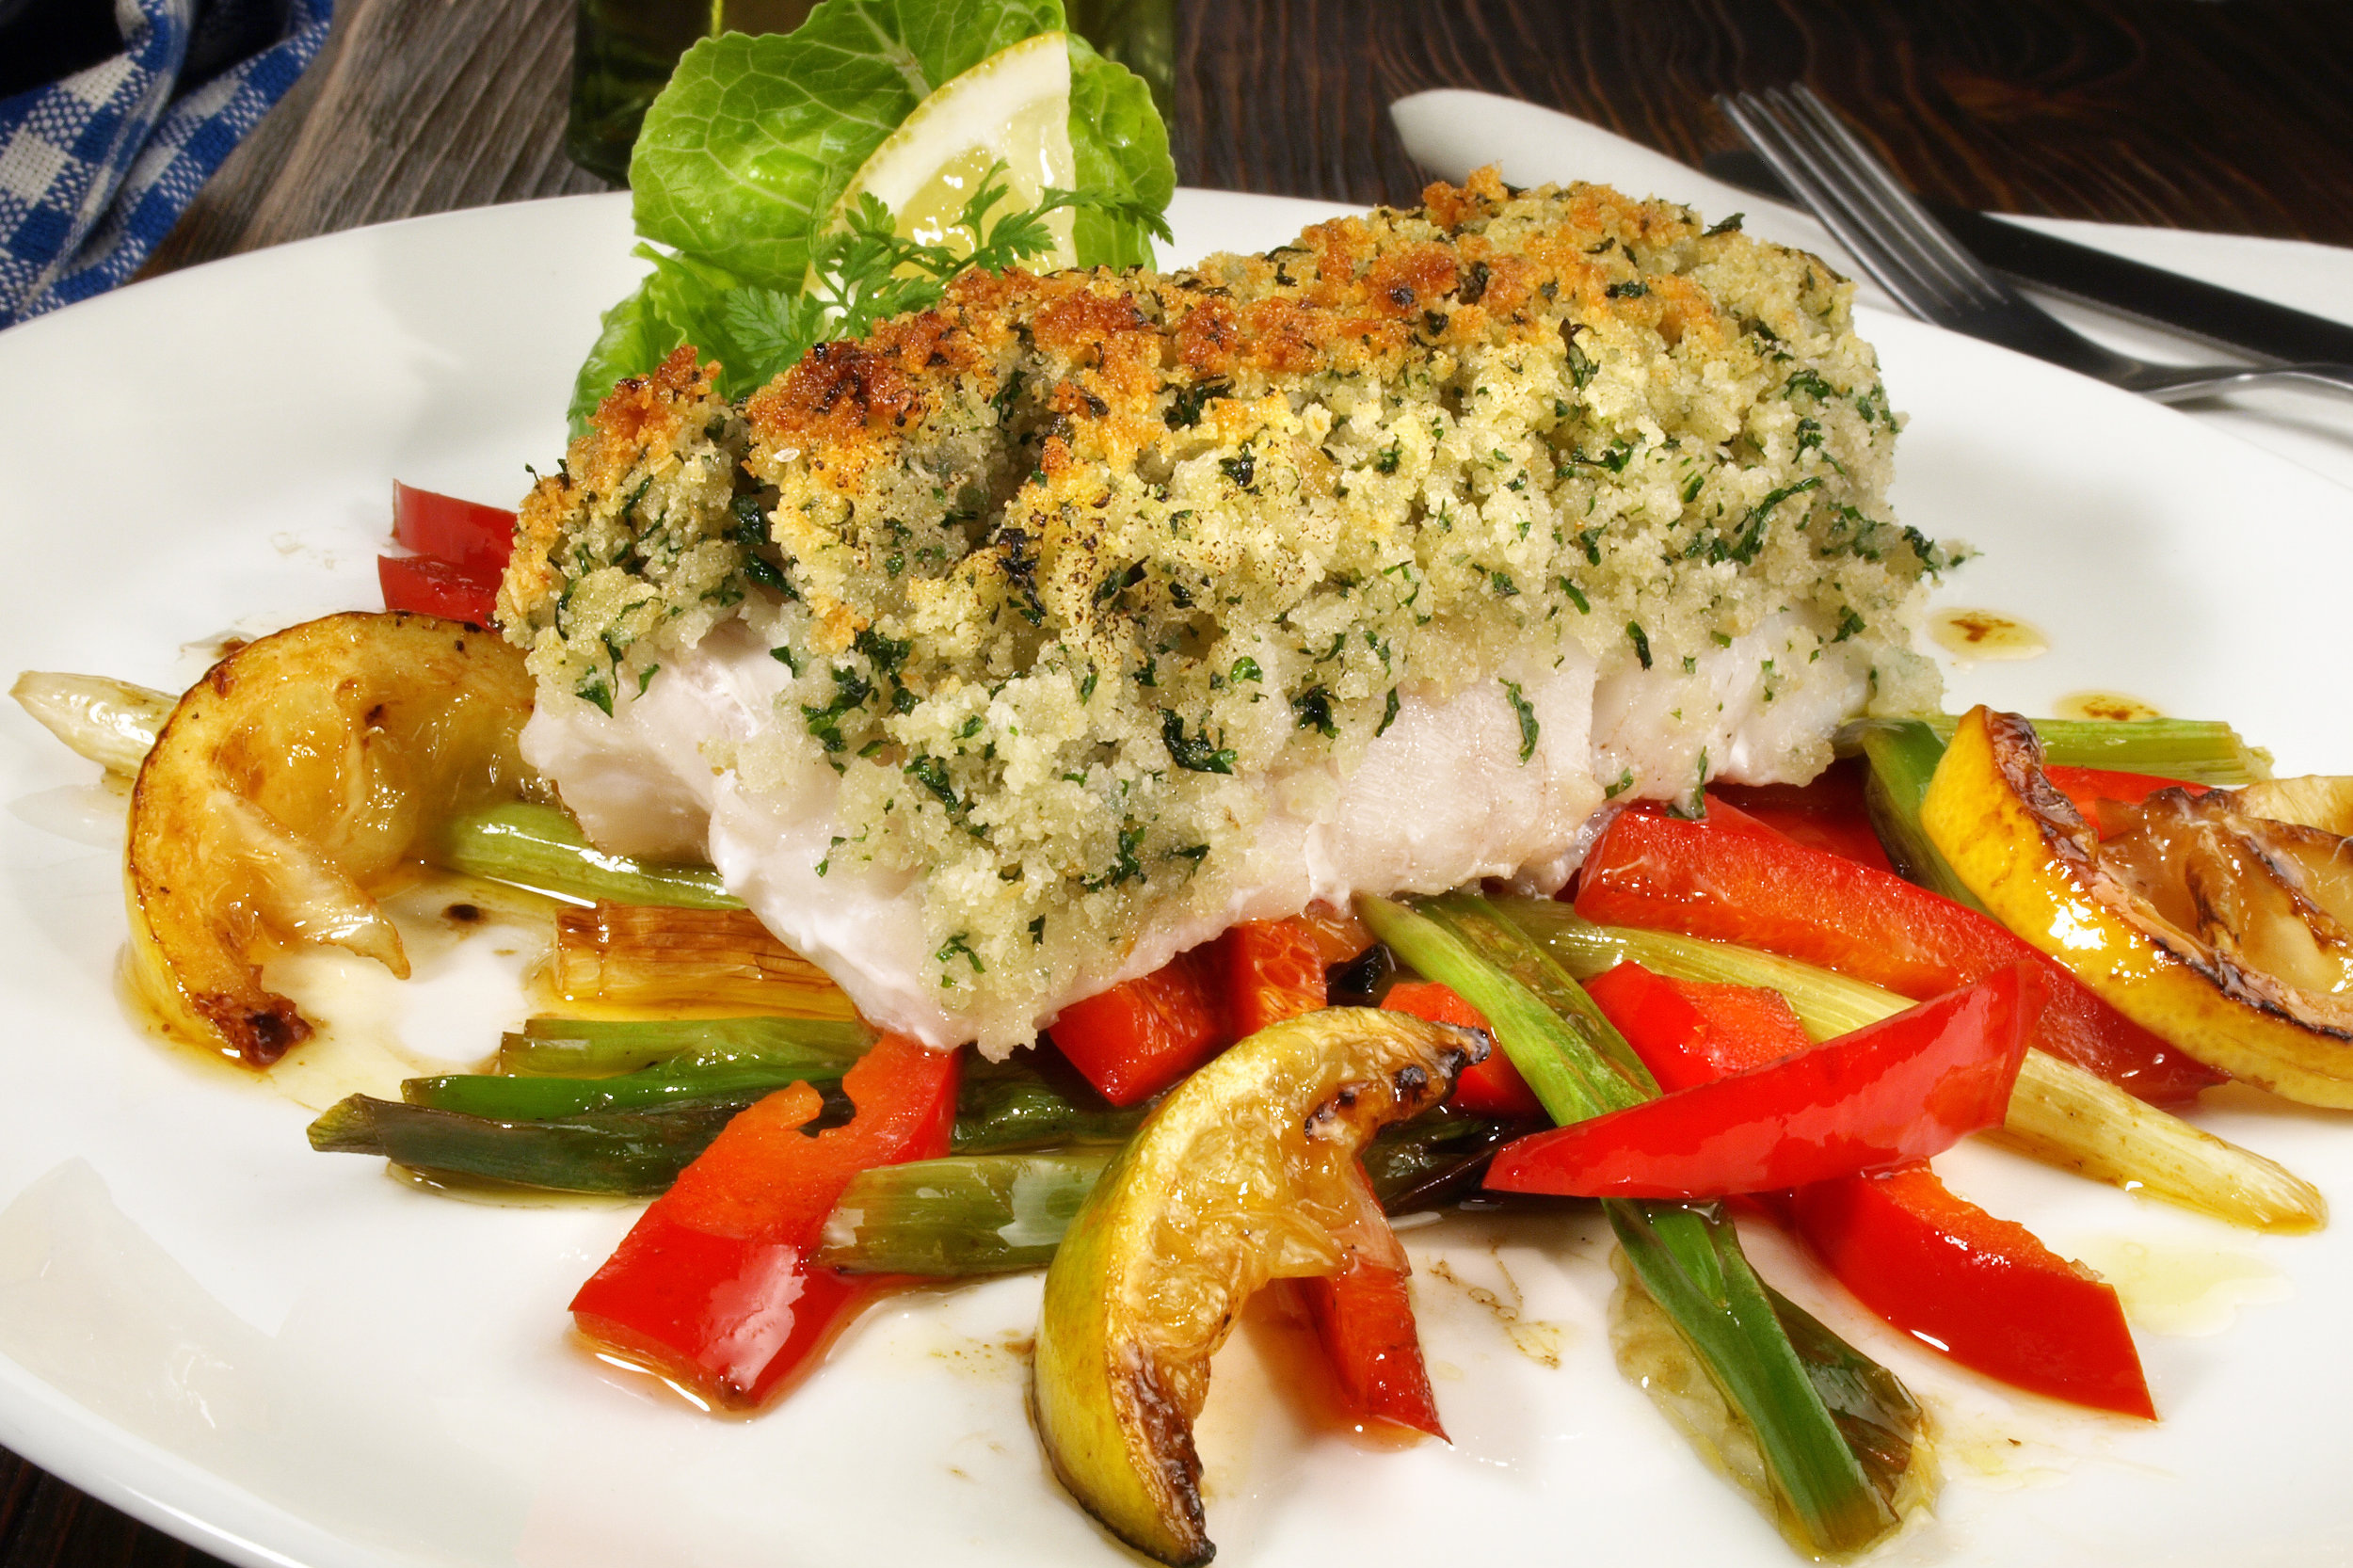 Herb crusted cod with roasted peppers - A great alternative to fish and chips.Tasty home-baked white fish with its own herby crust. Serve with soft and sweet peppers.